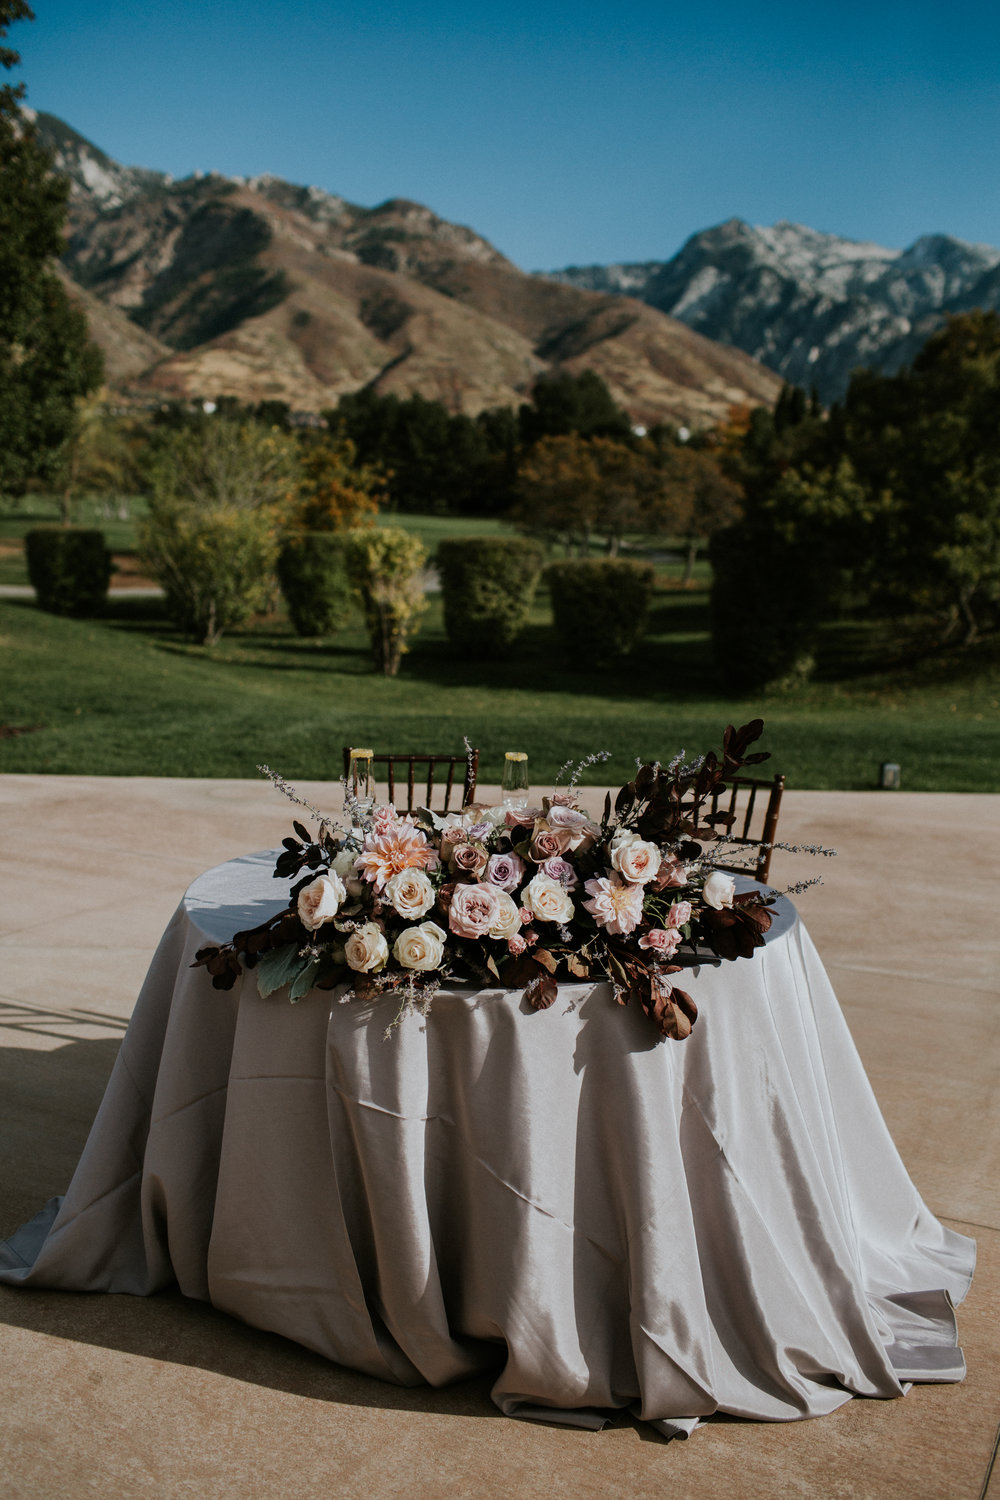 Elegant Fall Wedding | Country Club Wedding | Blush Wedding | Michelle Leo Events | Utah Event Planner and Designer | Jessica Janae Photography